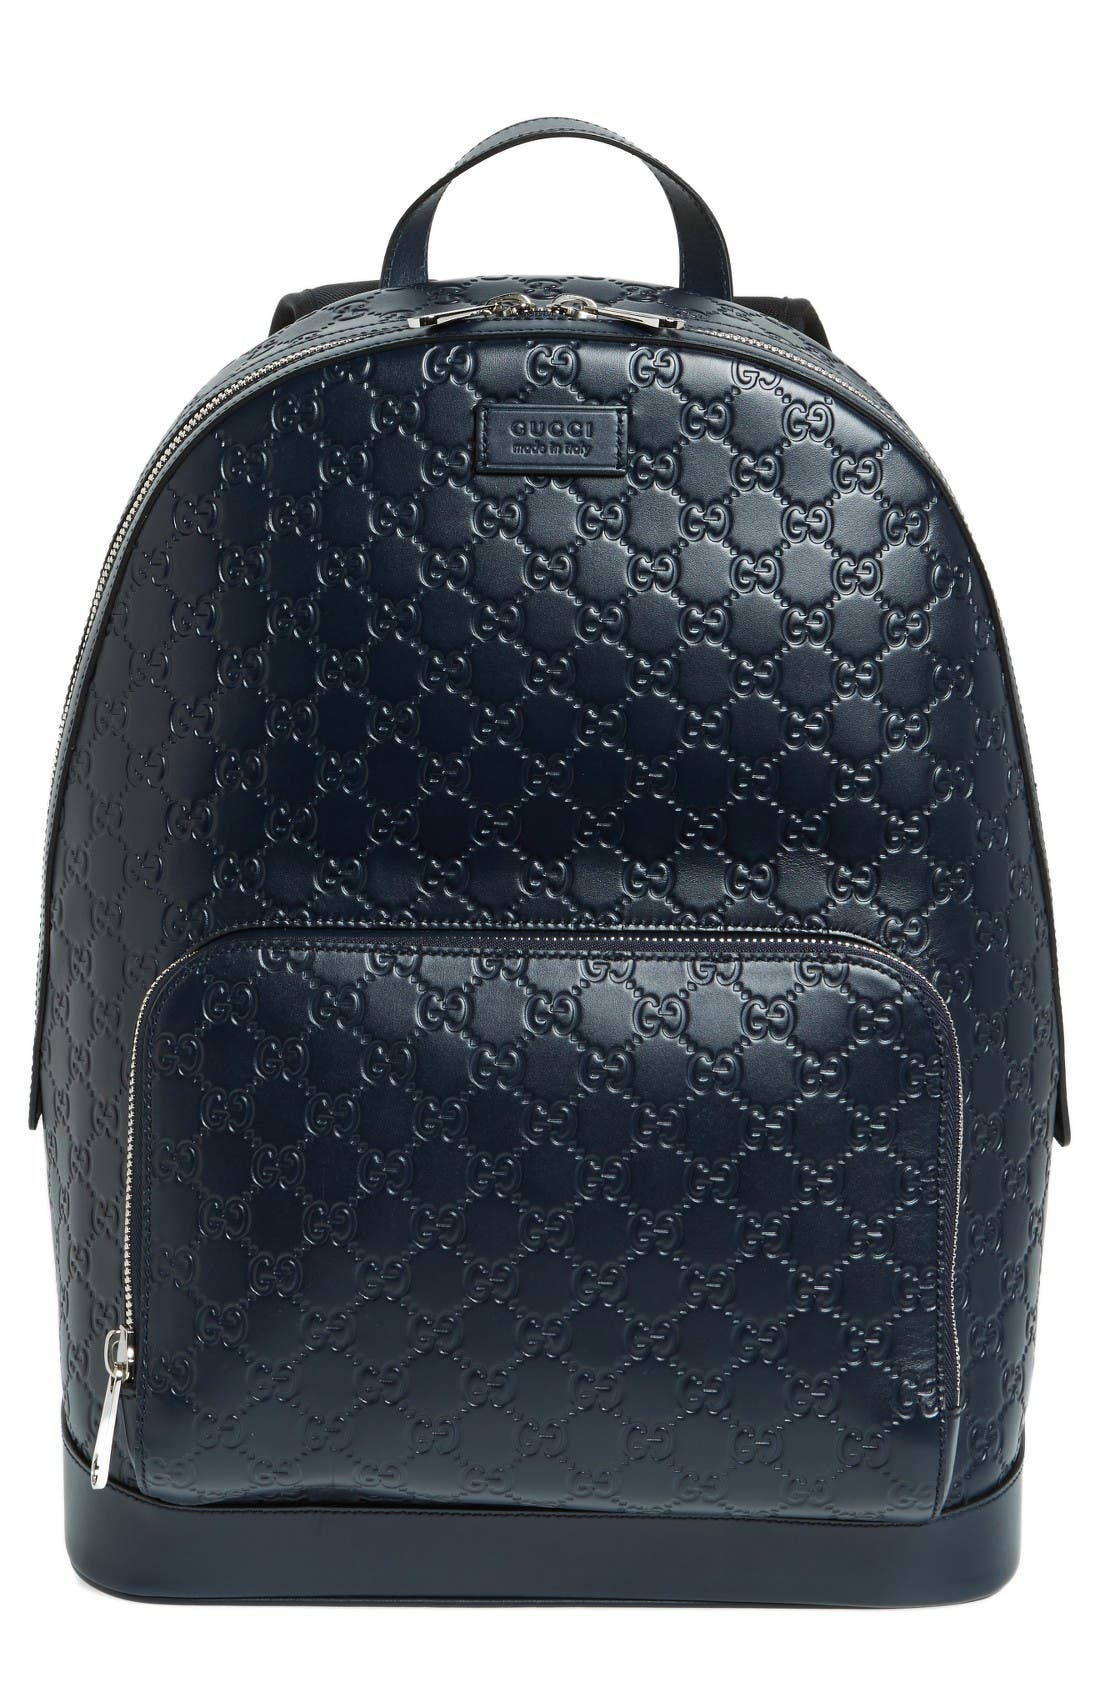 Alternate Image 1 Selected - Gucci Embossed Leather Backpack